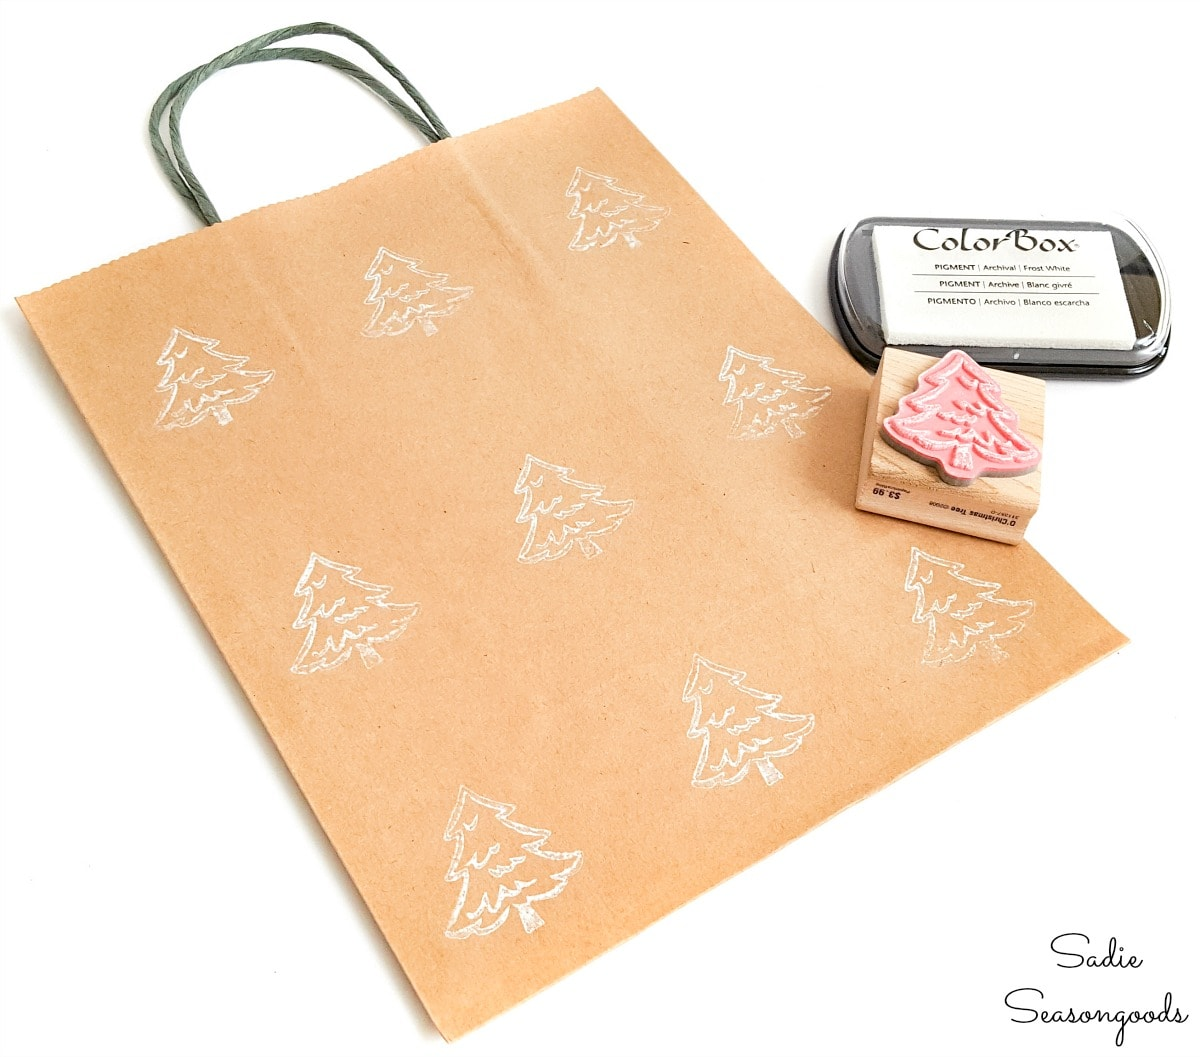 Rubber stamping on eco friendly gift bags